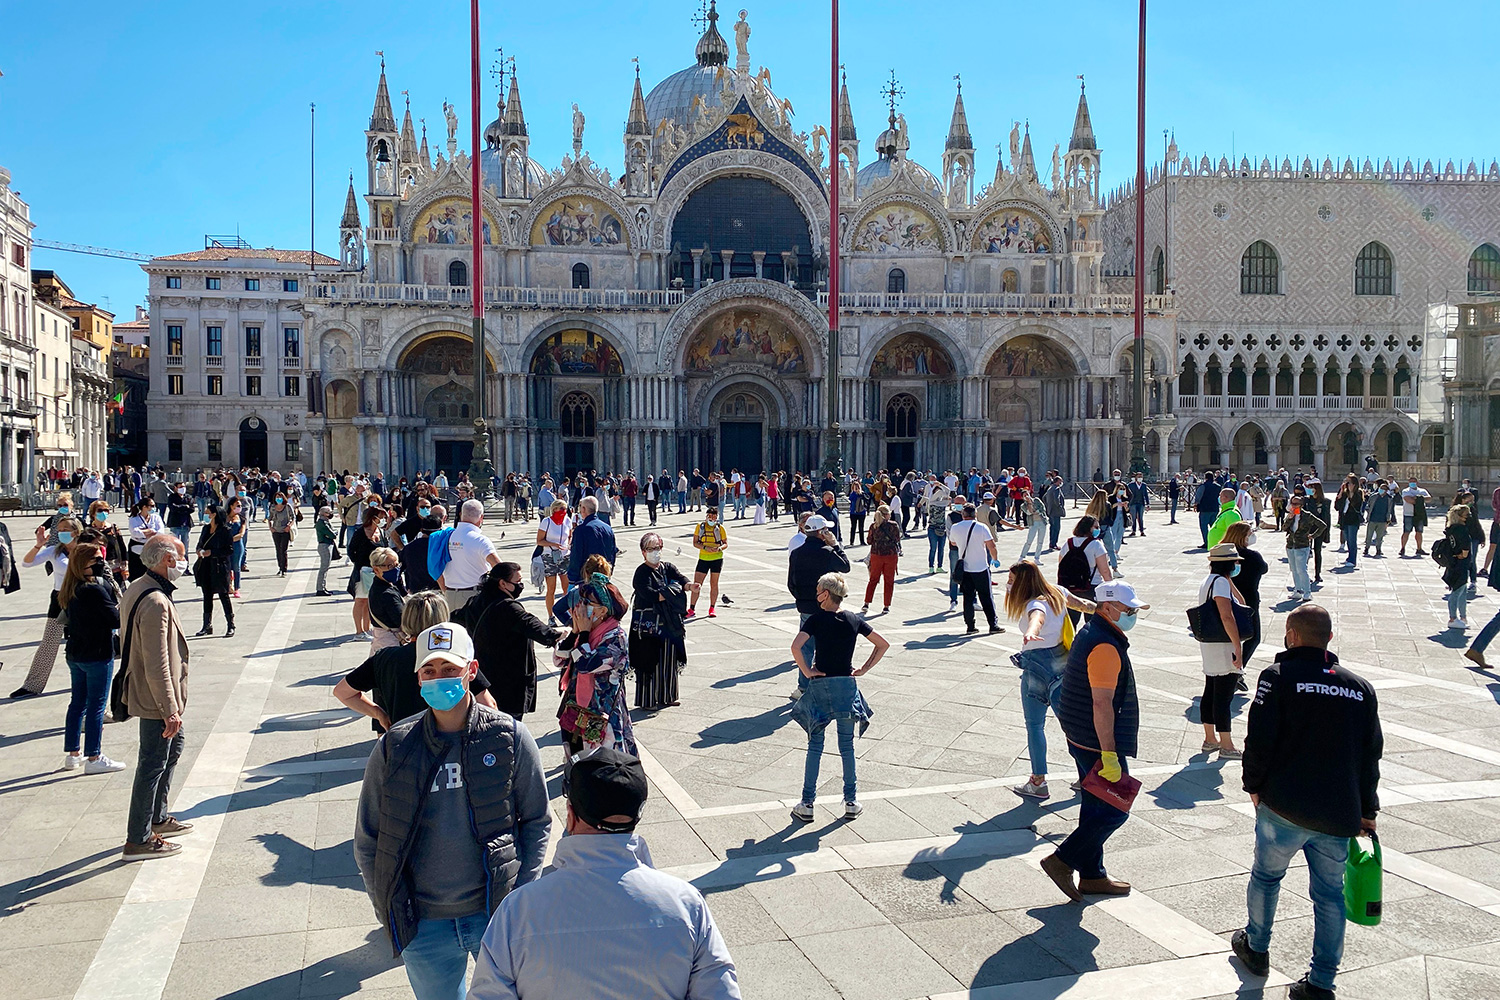 Piazza San Marco on May 4, 2020 in Venice